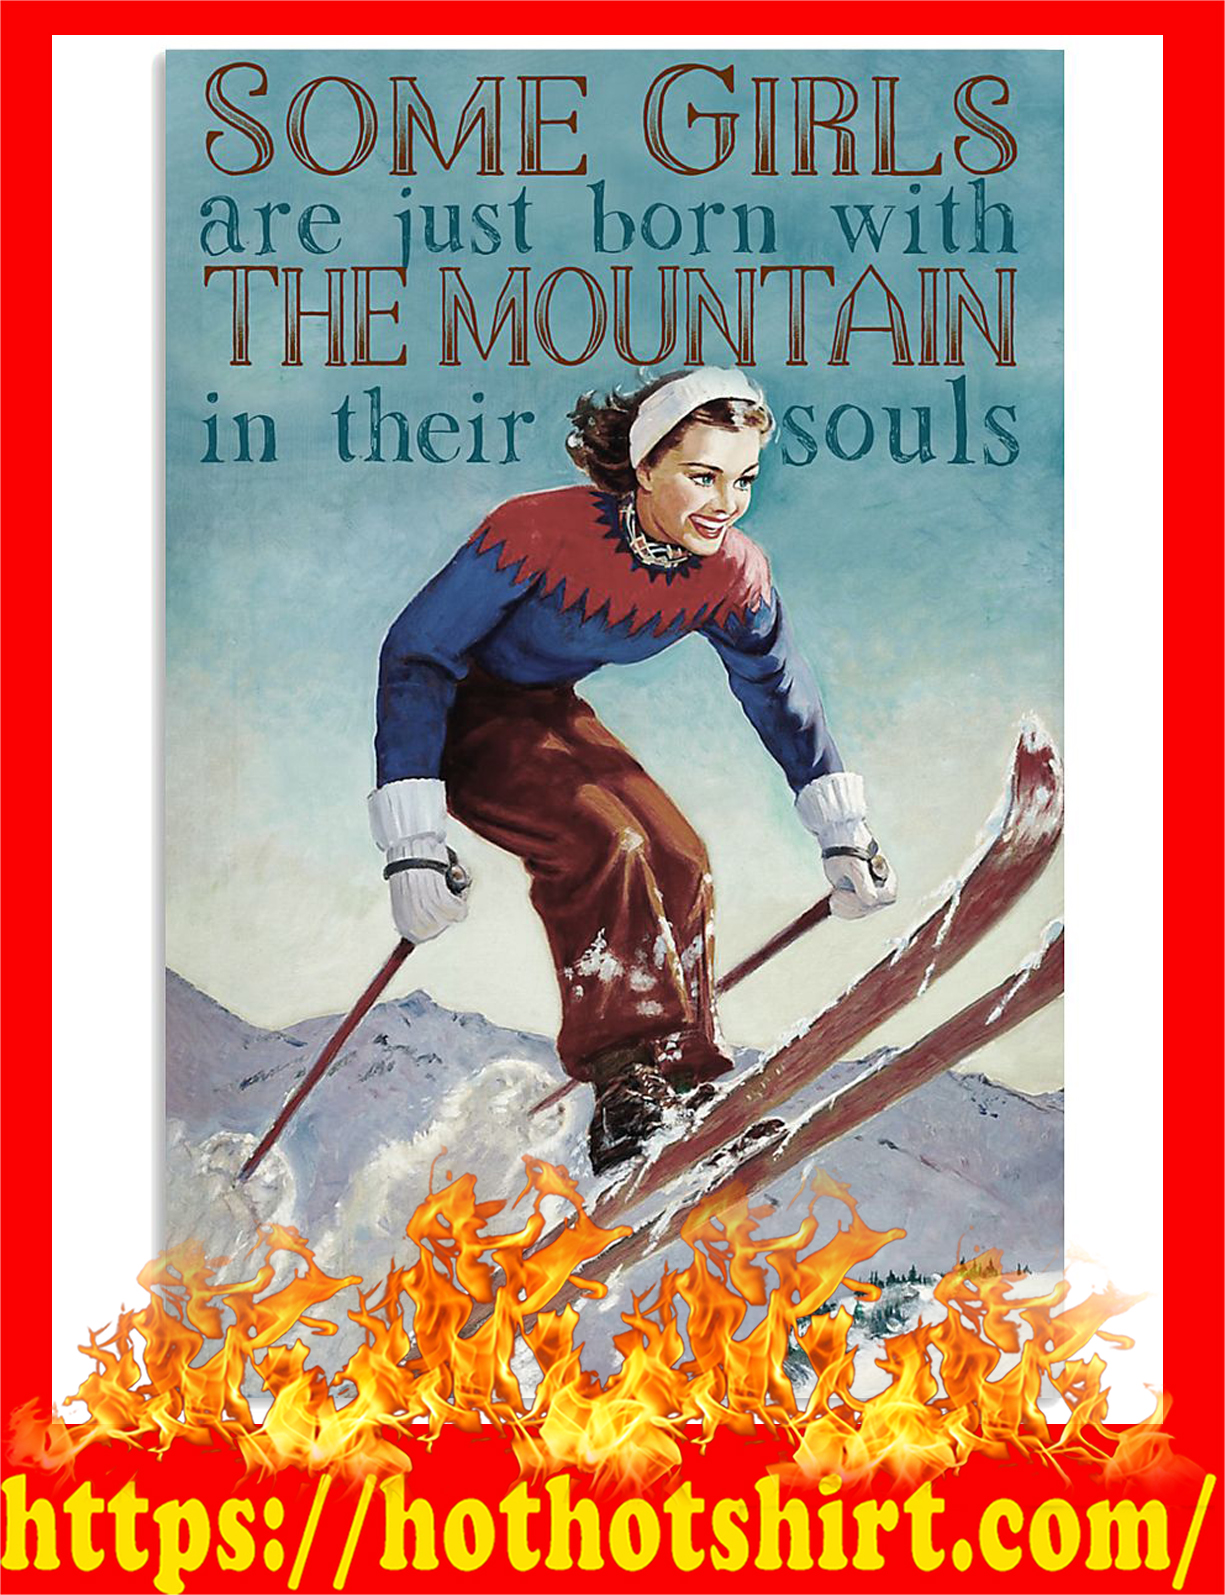 Skiing some girls are just born with the mountain in their souls poster - A2